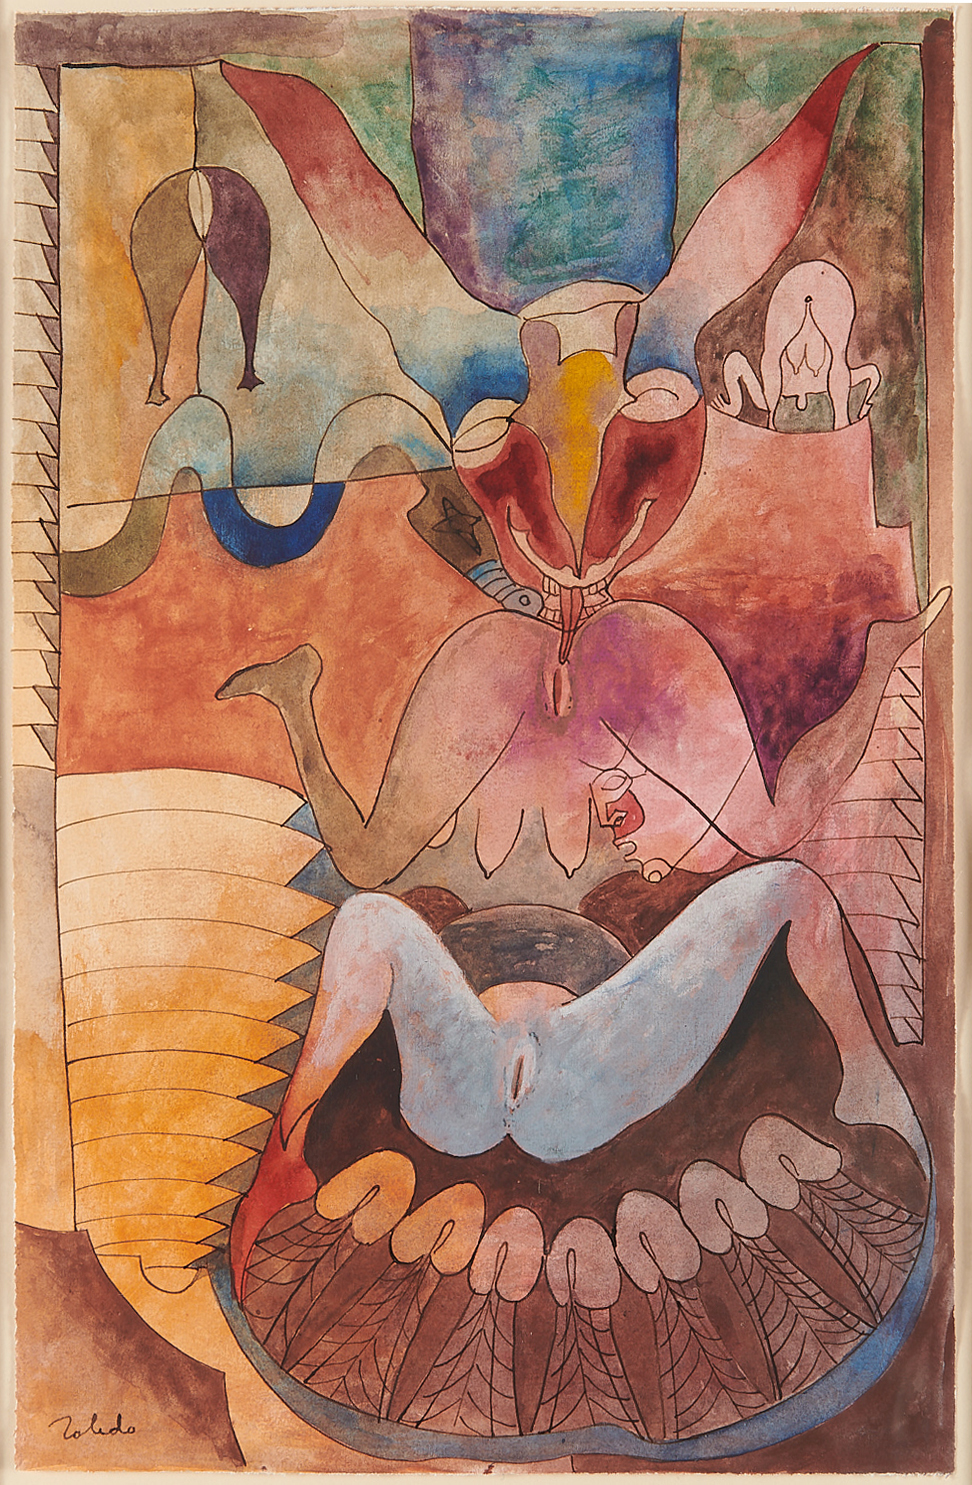 Francisco Toledo, Woman with Rabbits. c. 1970, watercolor and ink on paper.